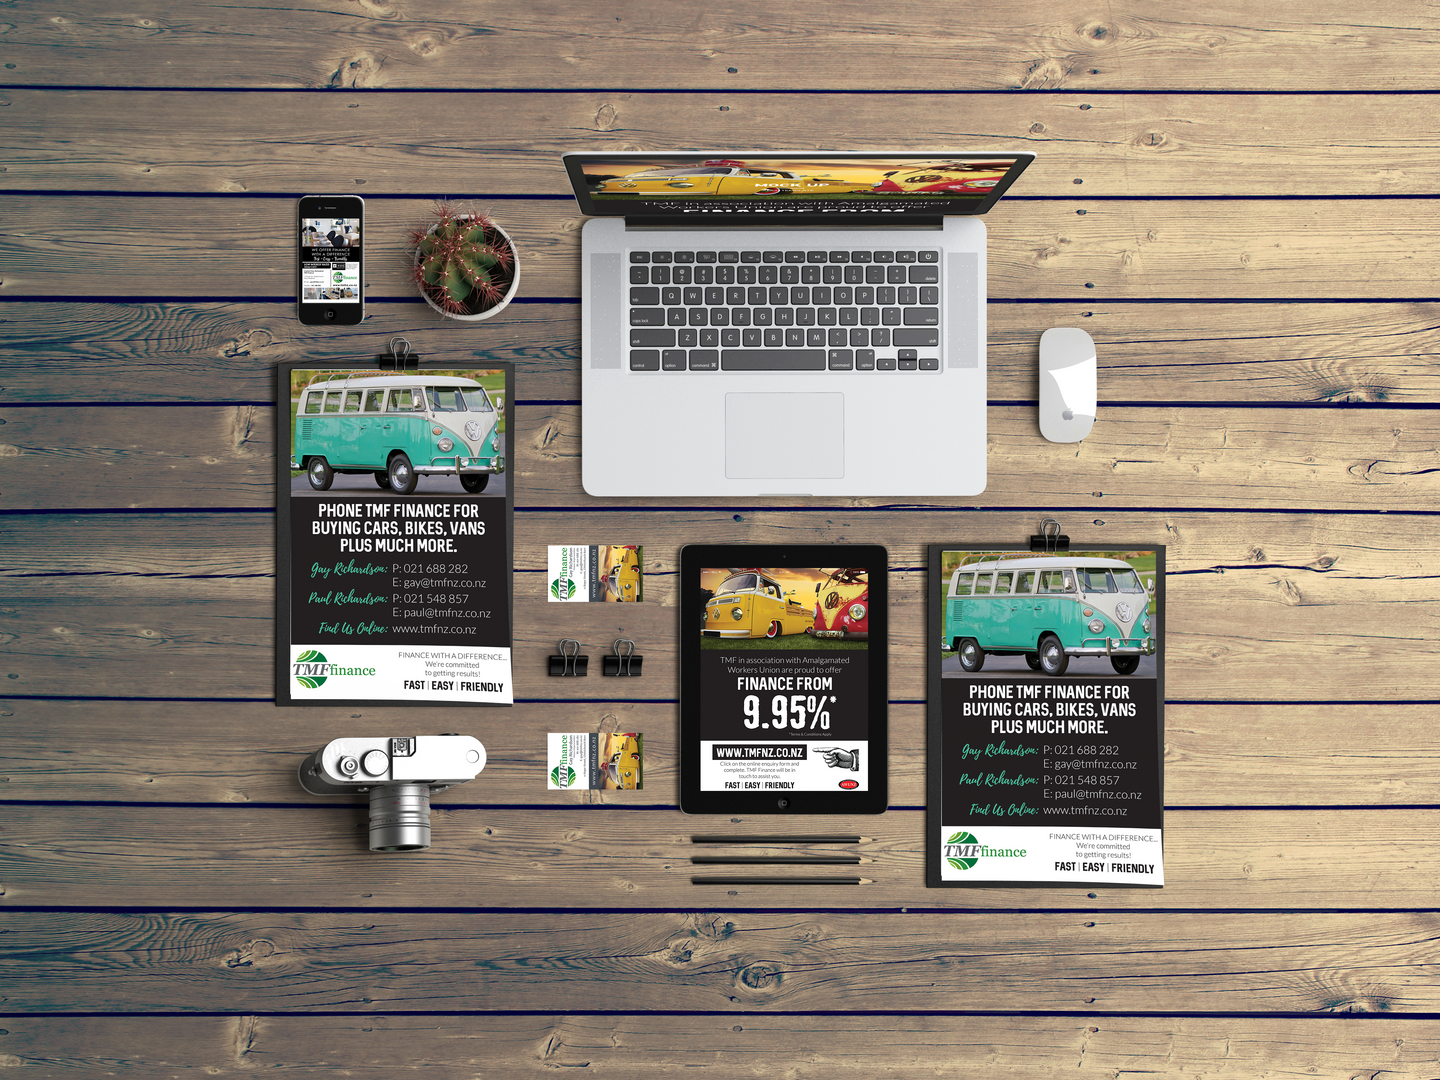 Whole business branding